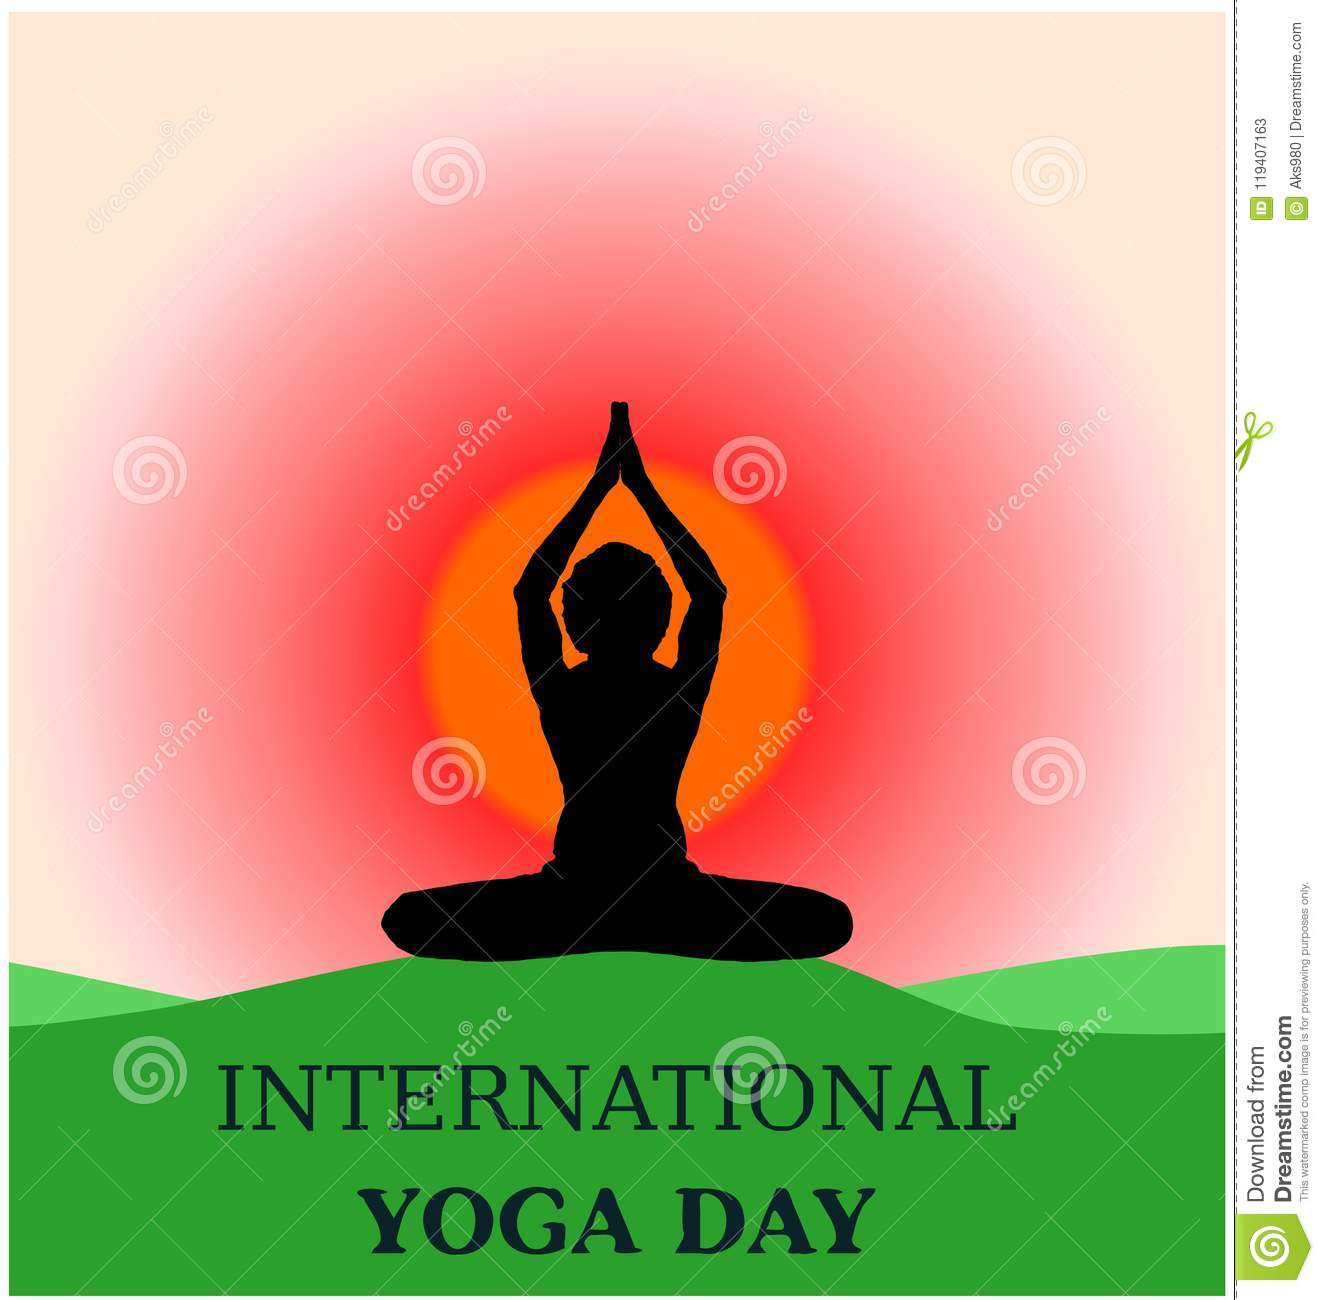 Yoga Day Beautiful Background Banner Parvastasna On Green Ground Morning Sunrise Silhouette Stock Vector Illustration Of Pose Morning 119407163